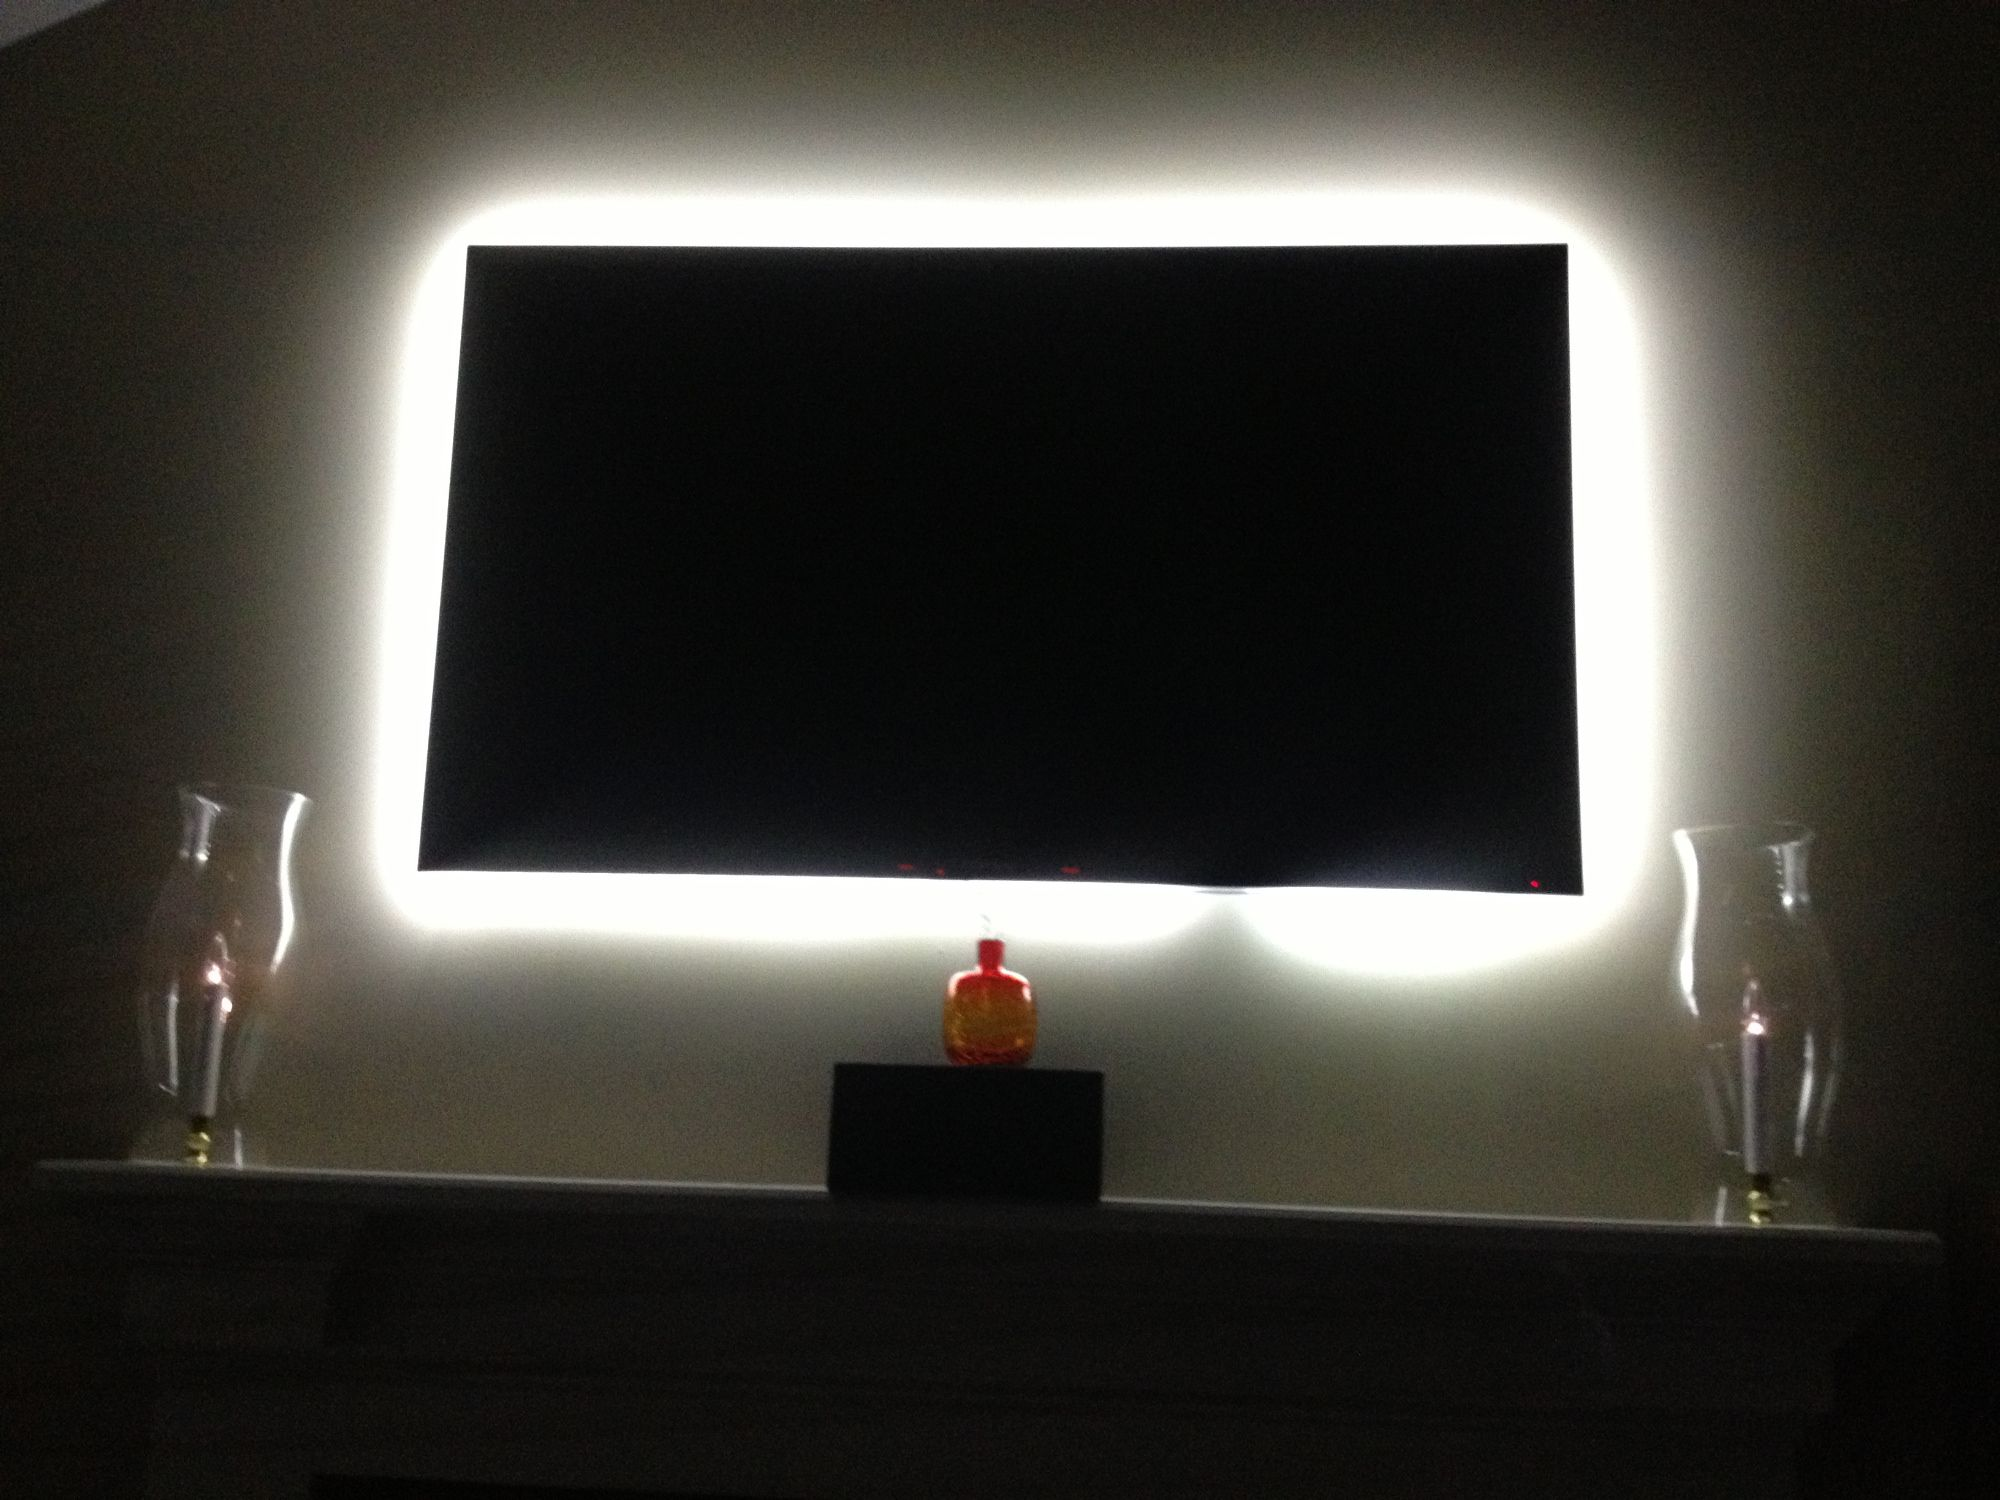 TV Backlight Kit from Inspired LED Installs in minutes and is so